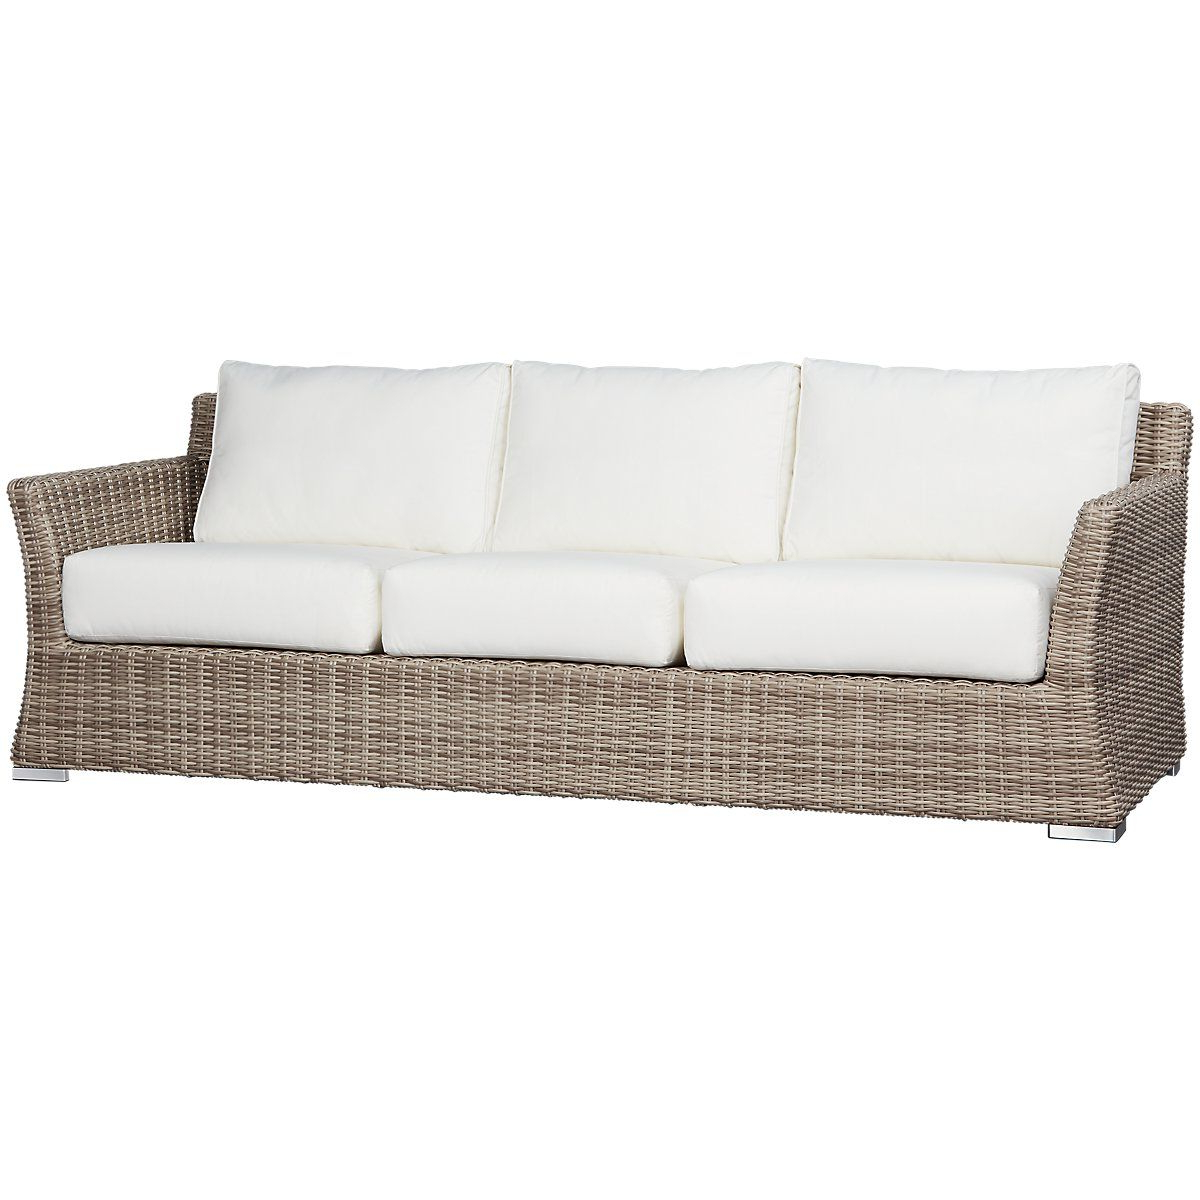 Casa Bella Newlyweds In 2019 With Regard To Latest Astrid Wicker Patio Sofas With Cushions (View 8 of 25)